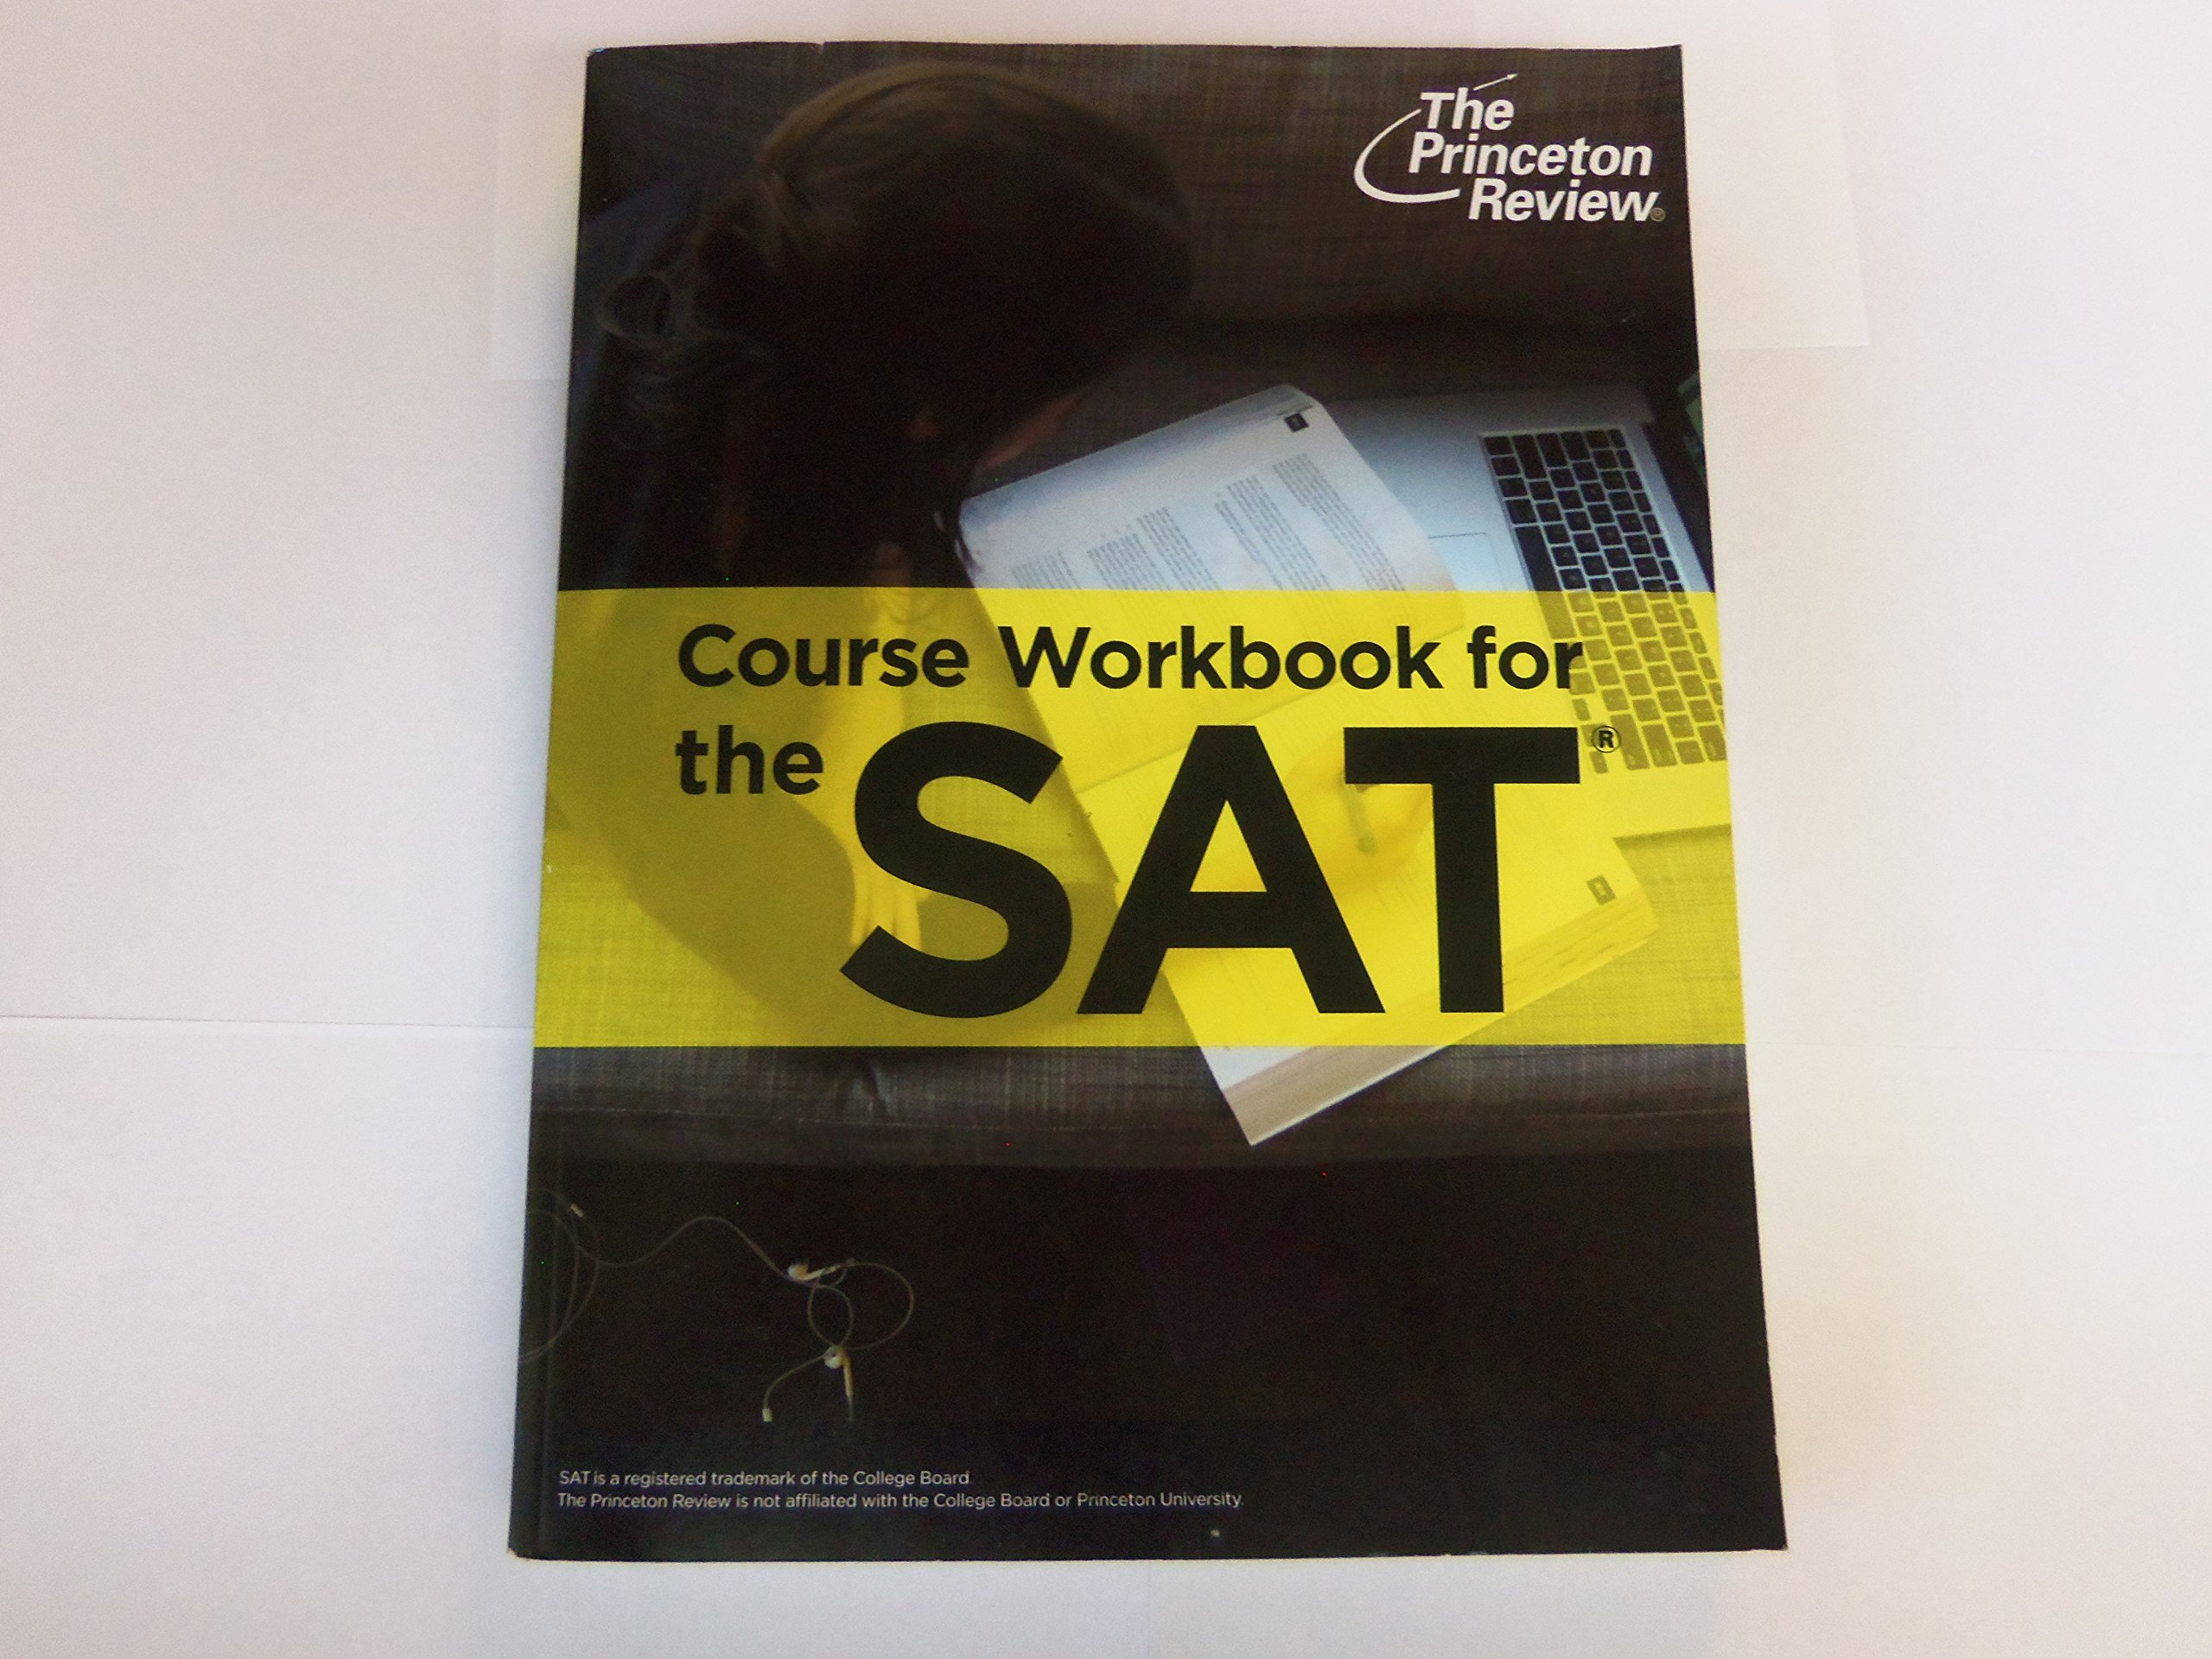 the princeton review course workbook for the sat brian becker rh amazon com Princeton Review College Rankings 2012 My Princeton Review